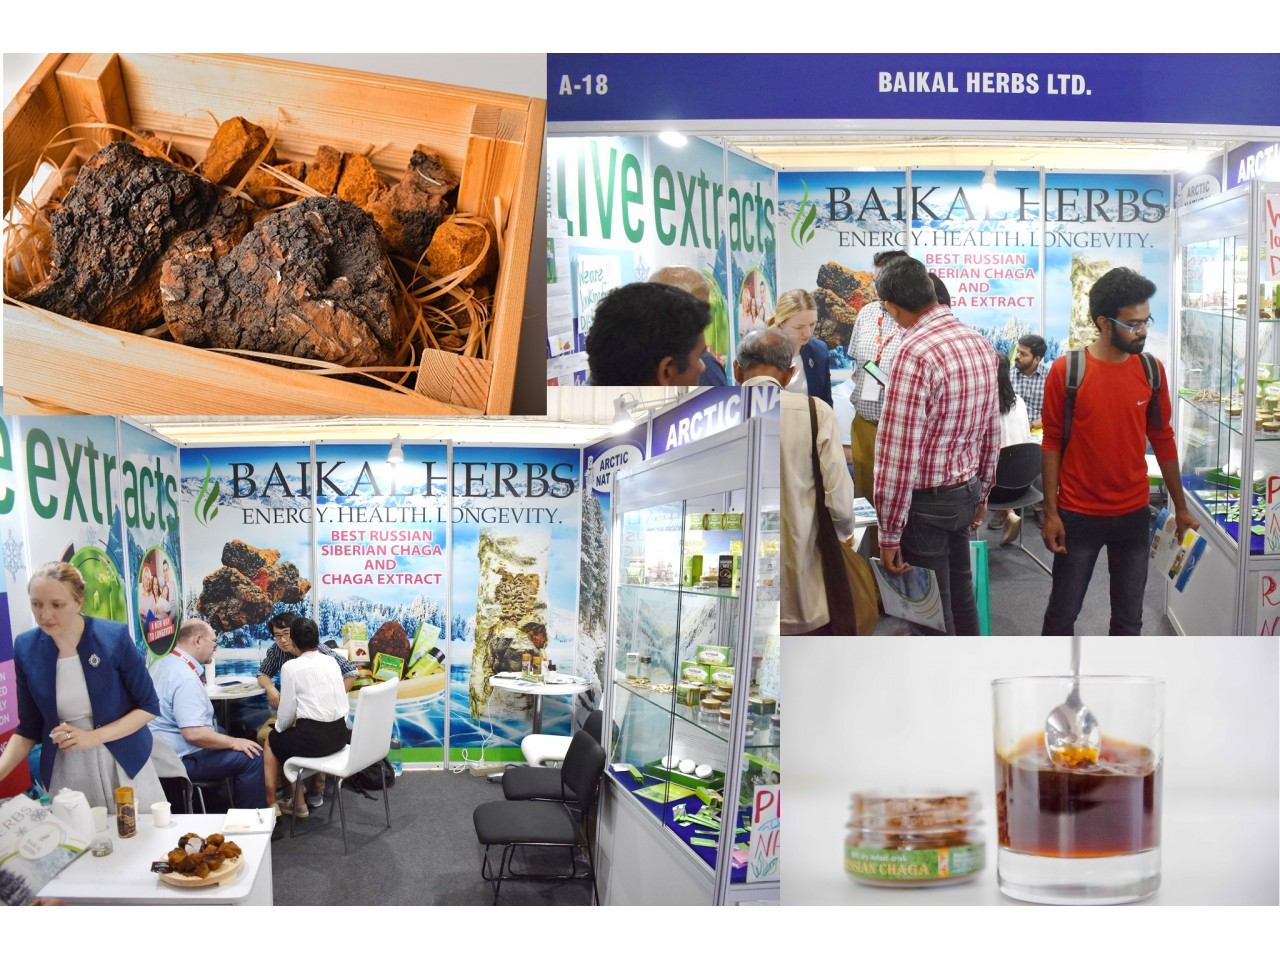 Baikal Herbs Ltd. - the champion in its industry